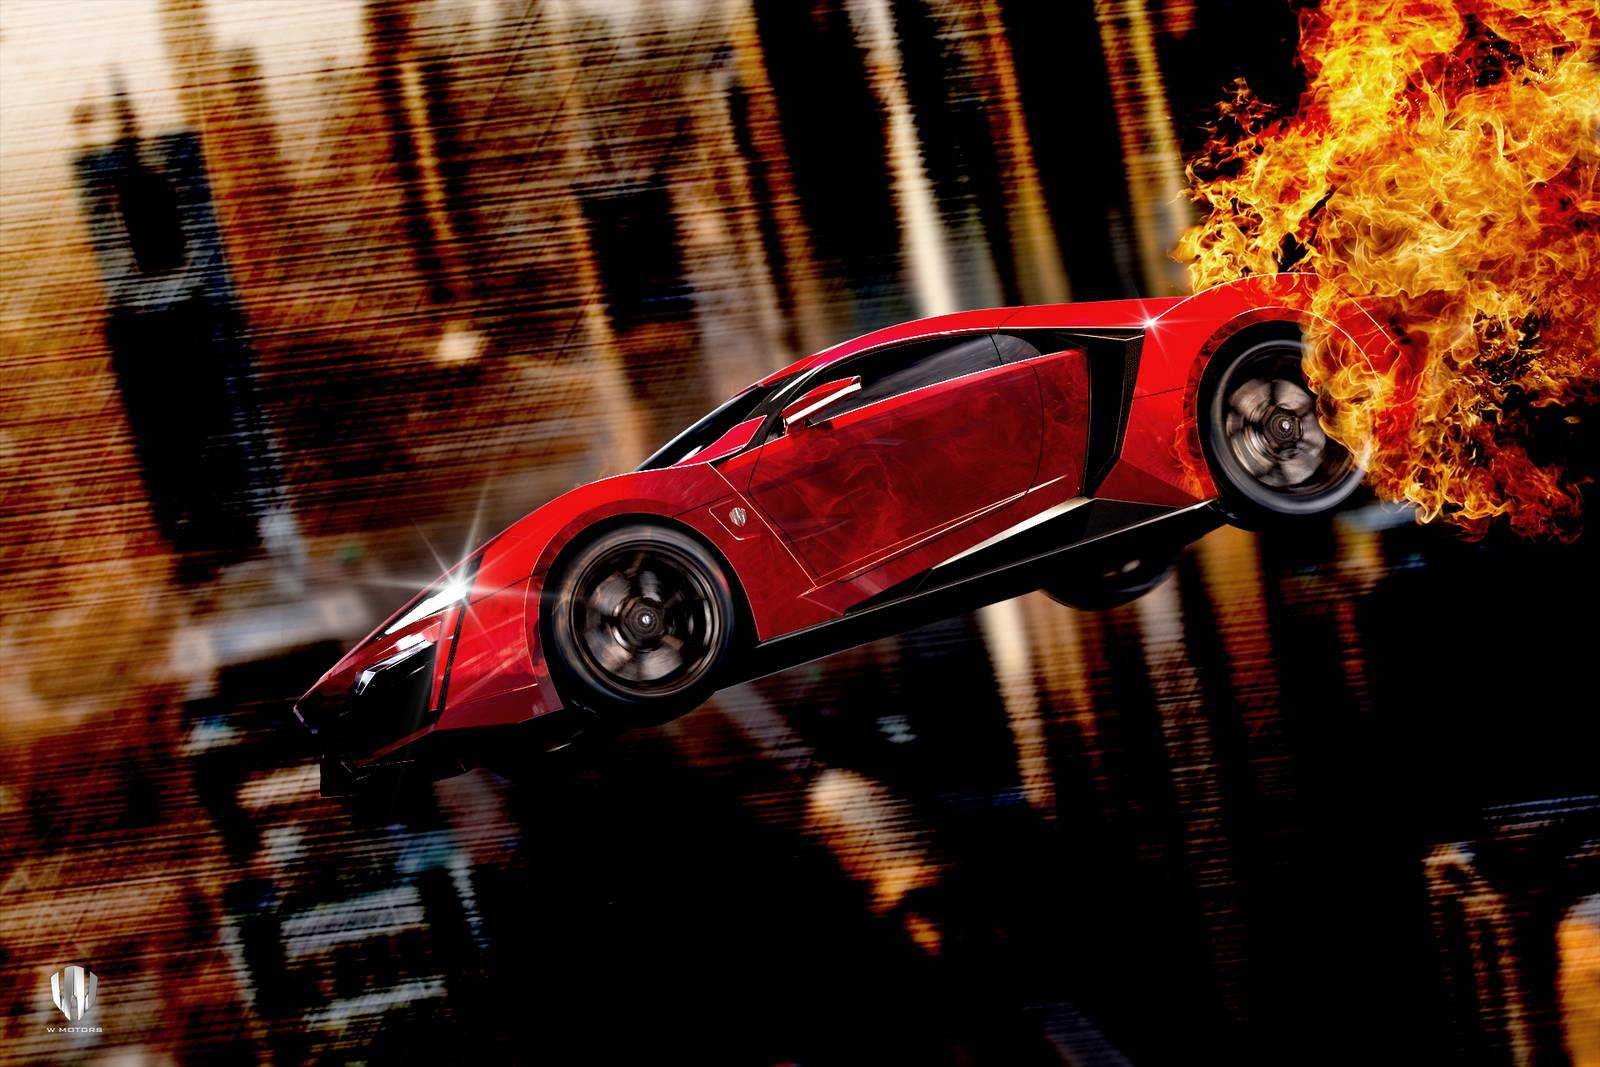 meet fast and furious 7 lykan hypersport the hero car gtspirit. Black Bedroom Furniture Sets. Home Design Ideas